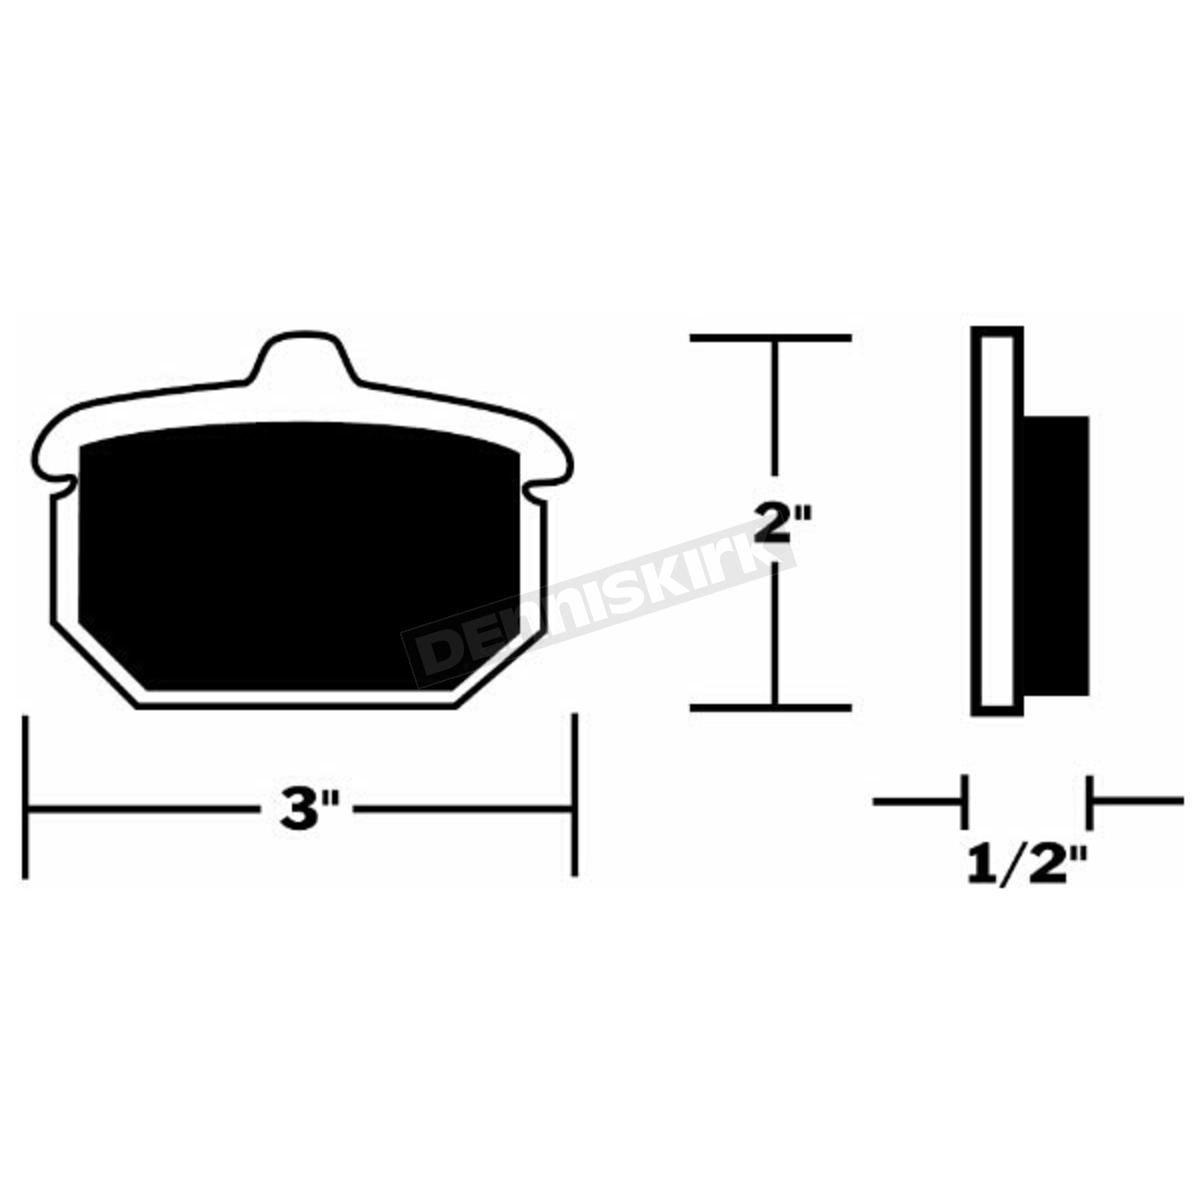 Drag Specialties Semi Metallic Brake Pads Ds 325006 Harley Harleydavidson Motorcycles This Diagram Provides A Parts Detail For